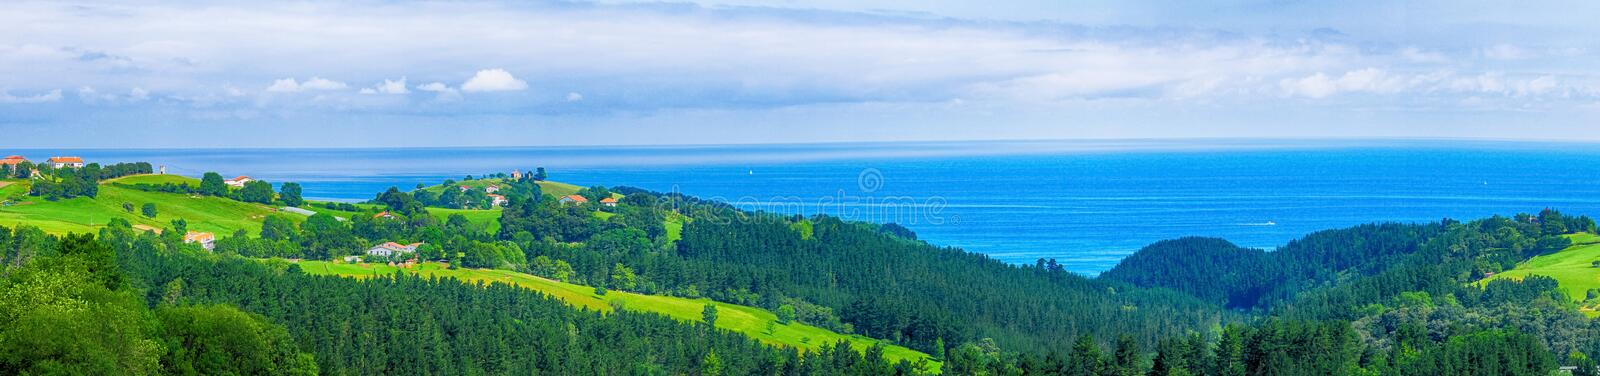 Rural landscape with a green meadow and forest near the sea at s. Ummer day royalty free stock images